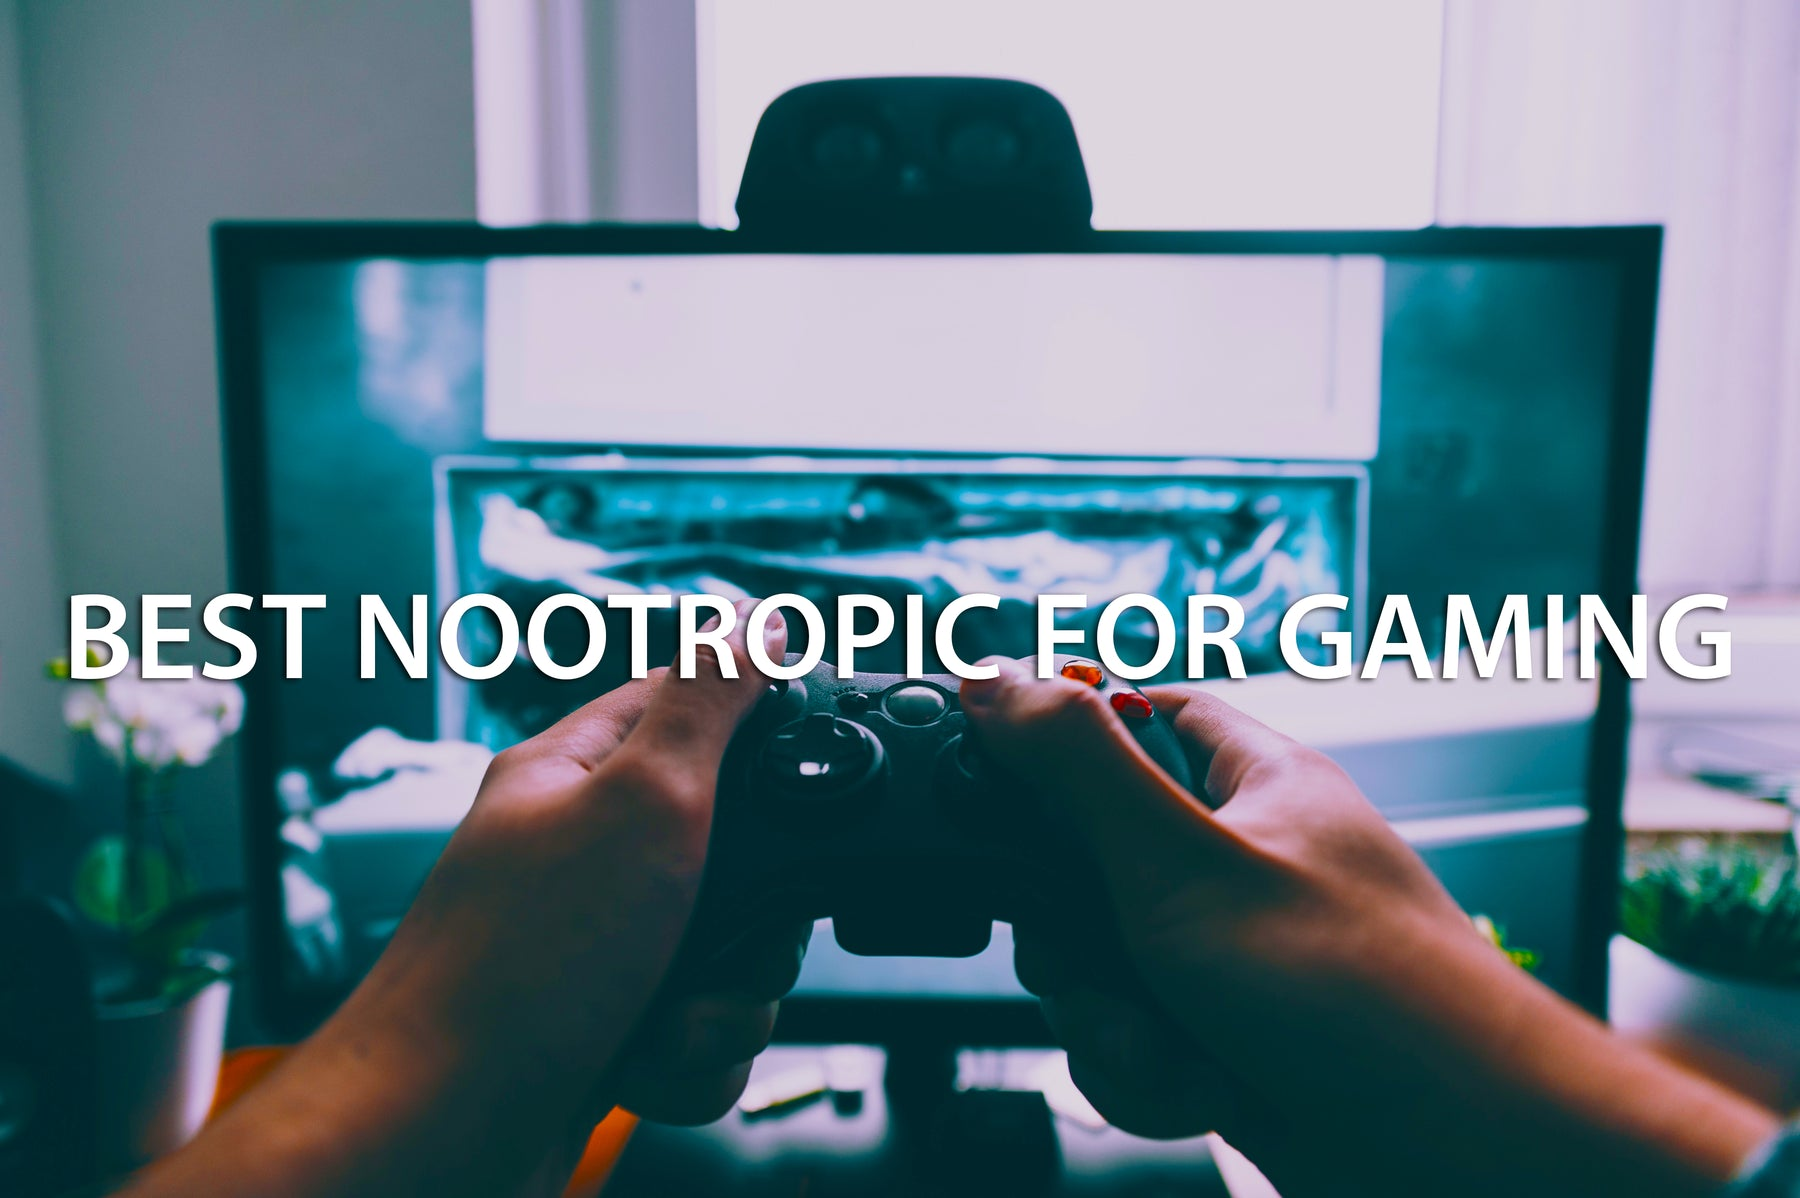 The Ultimate Nootropic Product for Gaming!